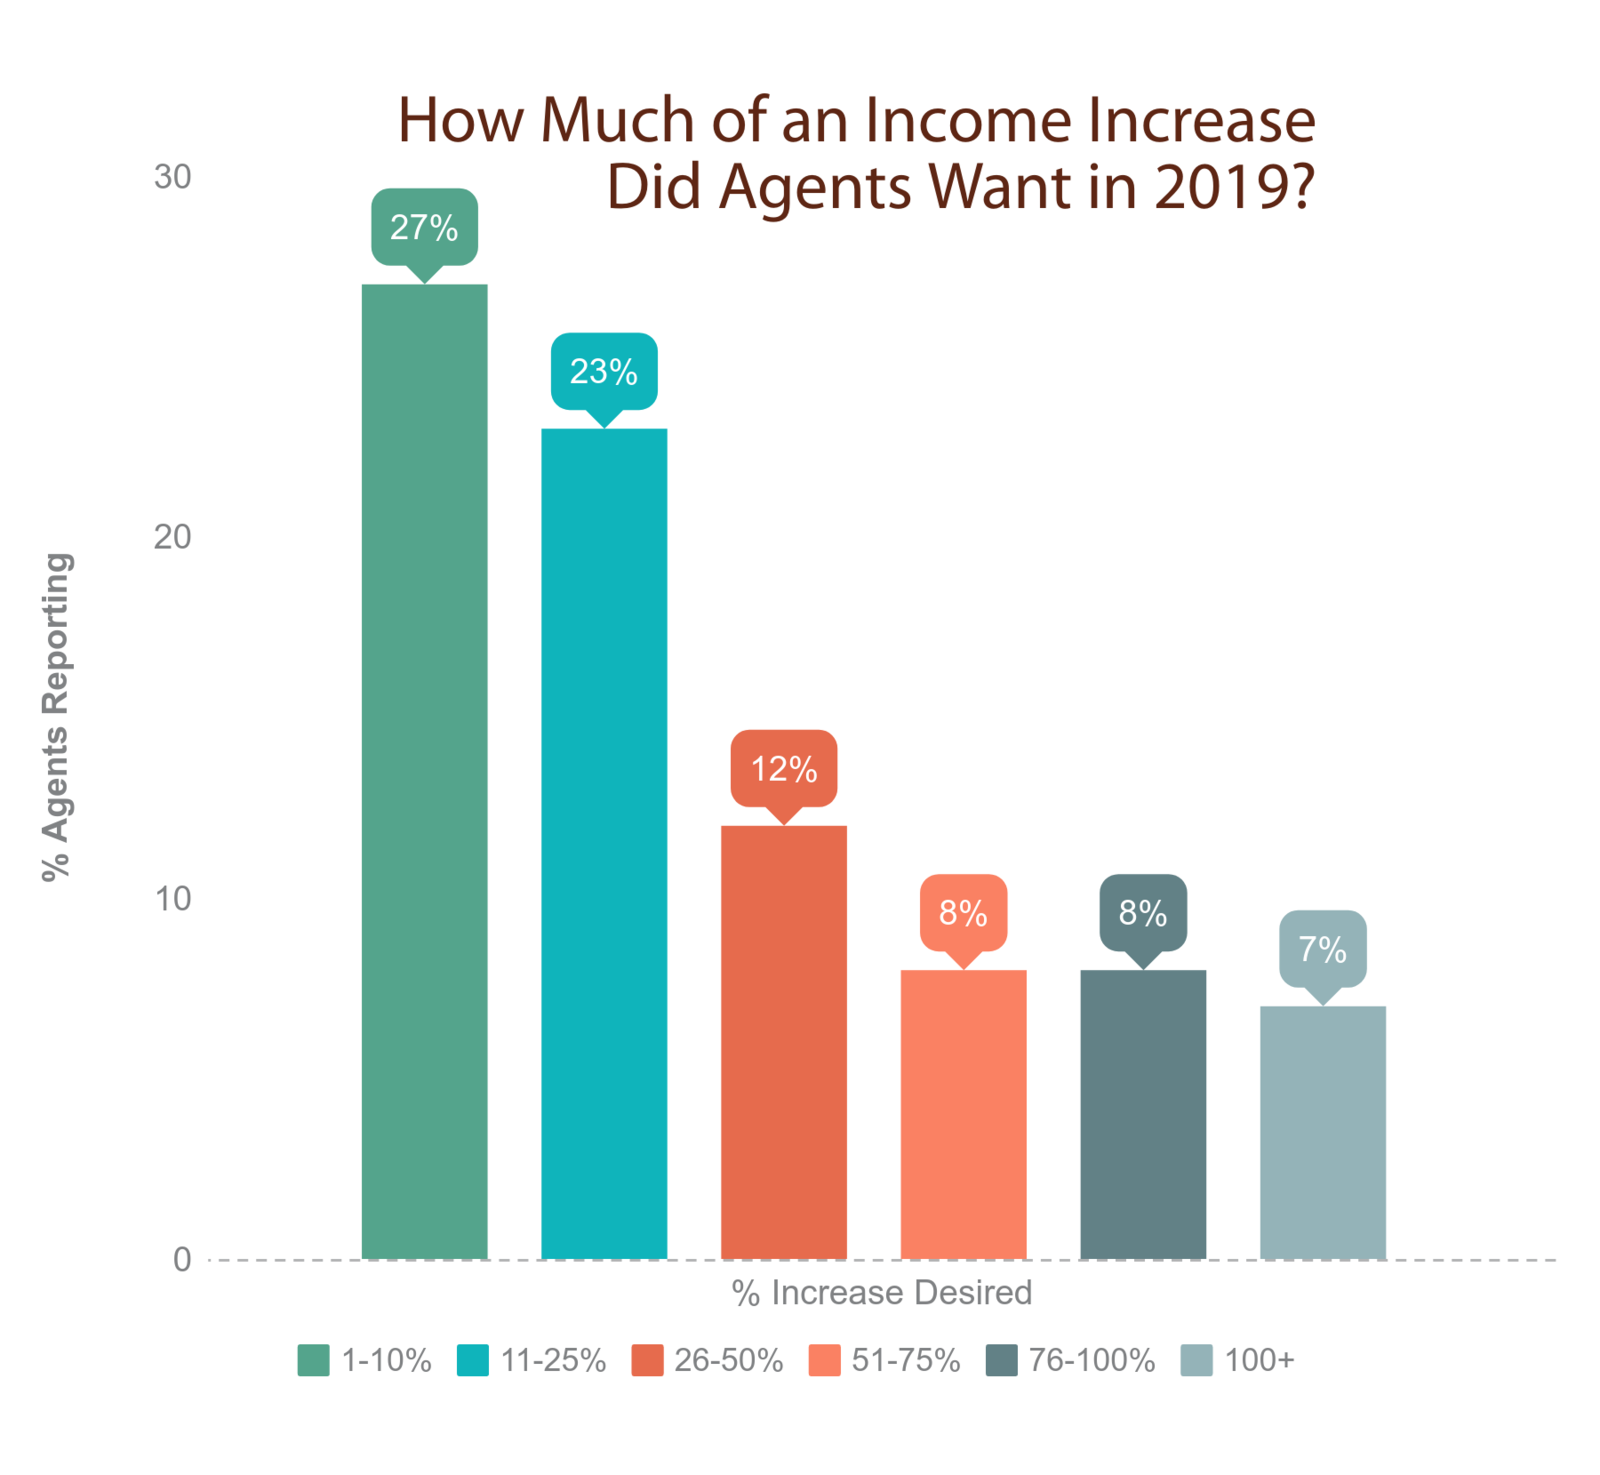 Percent Income Increase Travel Agents Desired in 2019